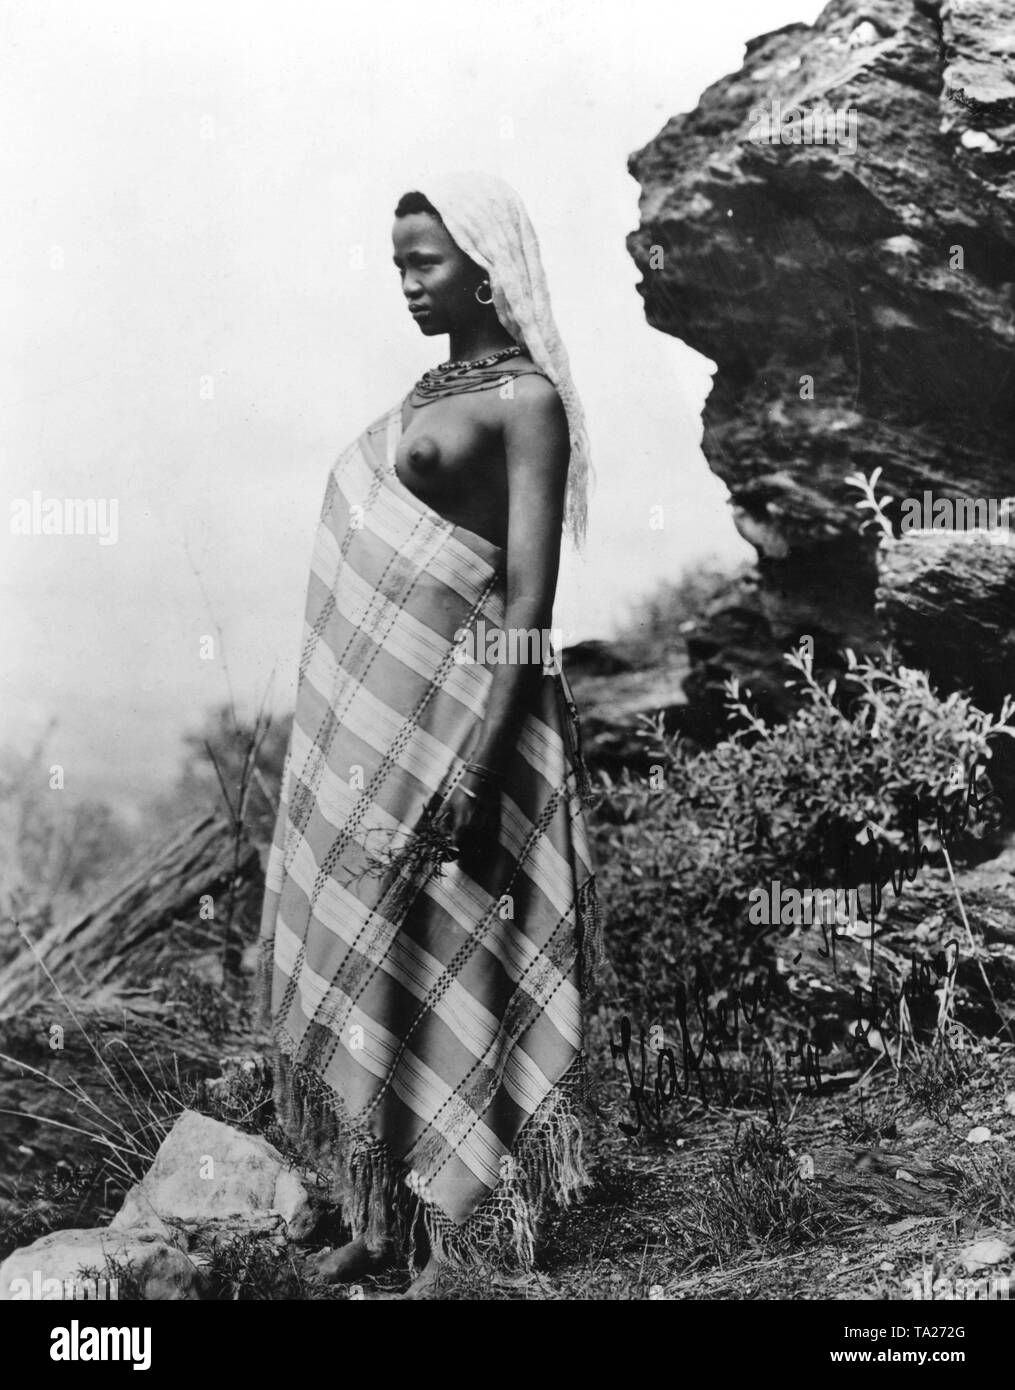 Kaffir woman dressed in a blanket in front of a ledge in German South-West Africa (undated image). - Stock Image